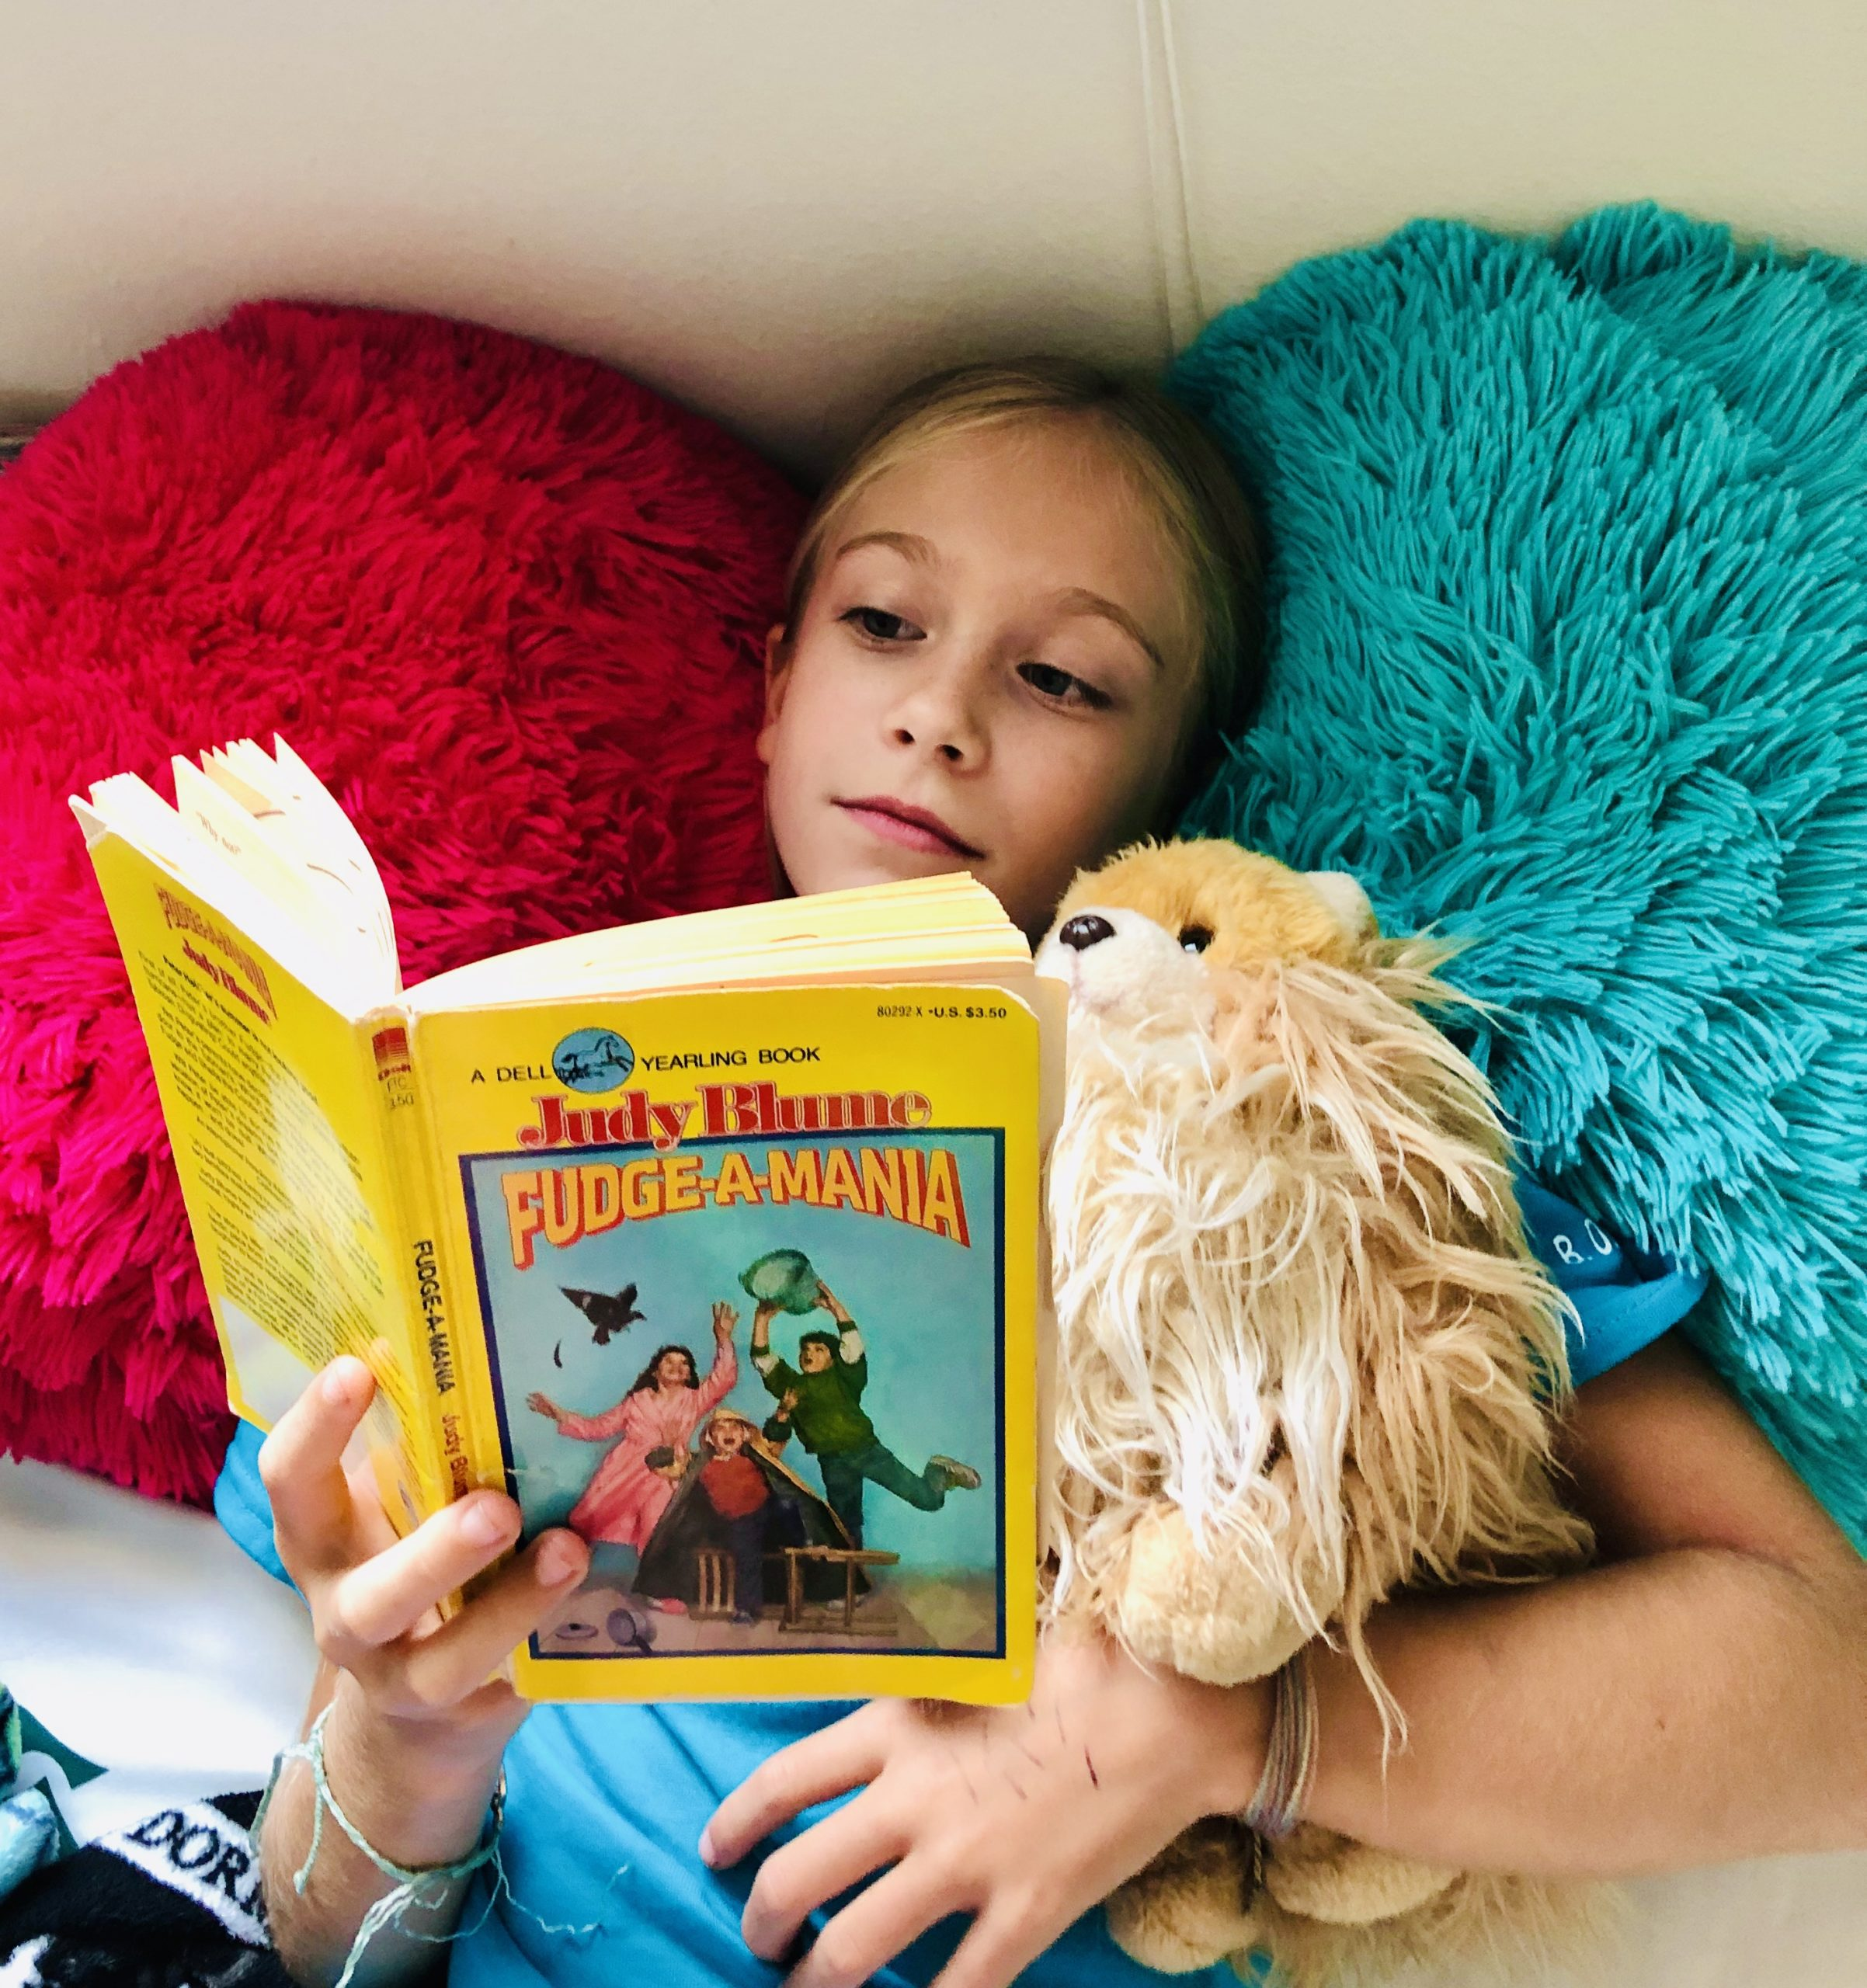 For the book review, a blond haired girl, Brecken, reading Fudge-A-Mania by Judy Blume. She's laying on 2 fuzzy pillows, hot pink and blue.